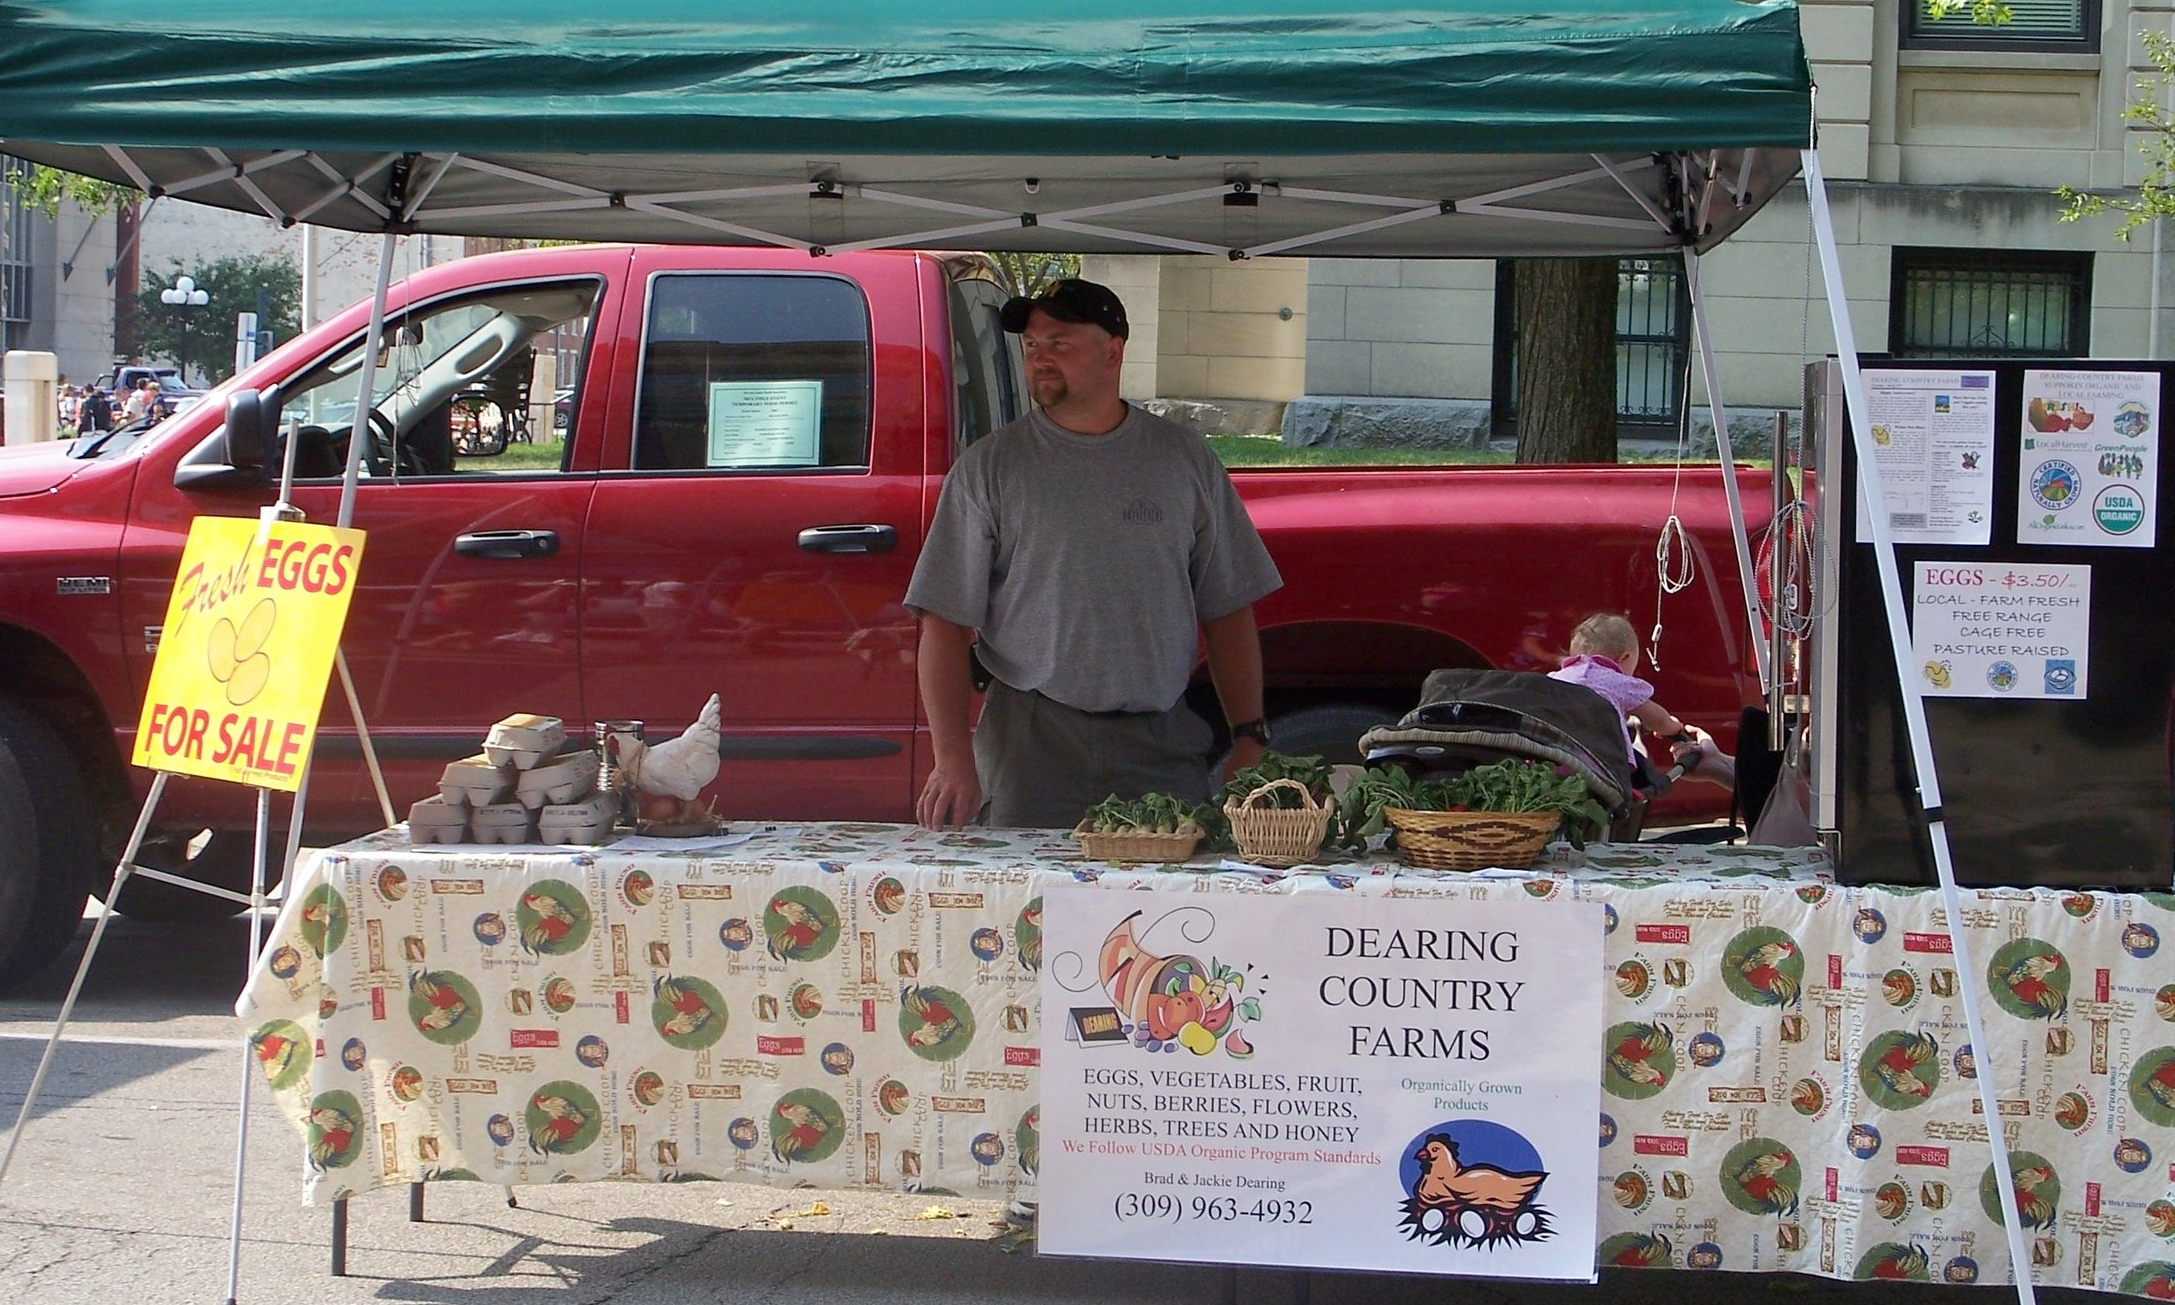 Meet Brad Dearing,McLean County Farmer - Brad owns Dearing Country Farms, a farmstead raising chickens for meat and eggs and growing seasonal produce, trees, fruit, flowers, grasses, nuts and herbs. Products can be purchased directly from the farm, at local farmers markets, and at health food stores.